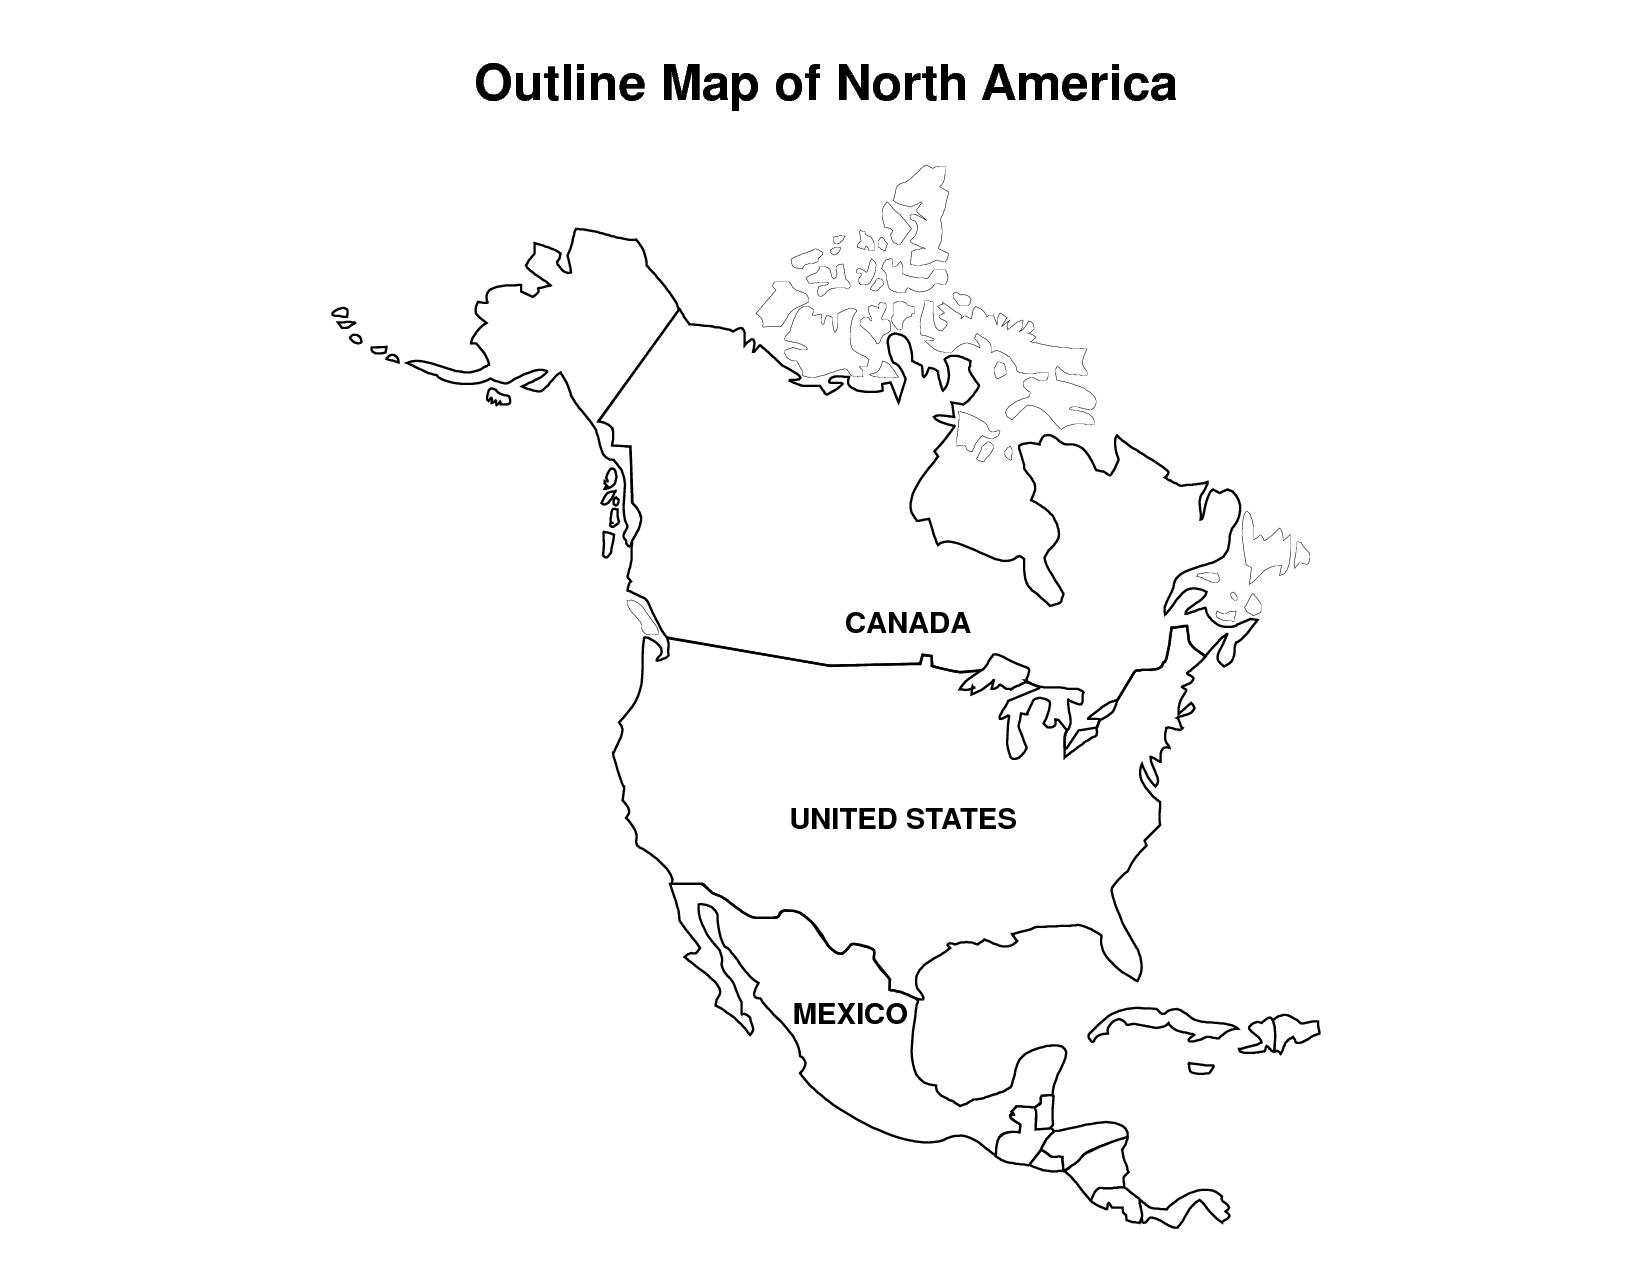 Outline Map Of United States And Canada Together Pin by Jessica Gomez on Homeschool | North america map, America